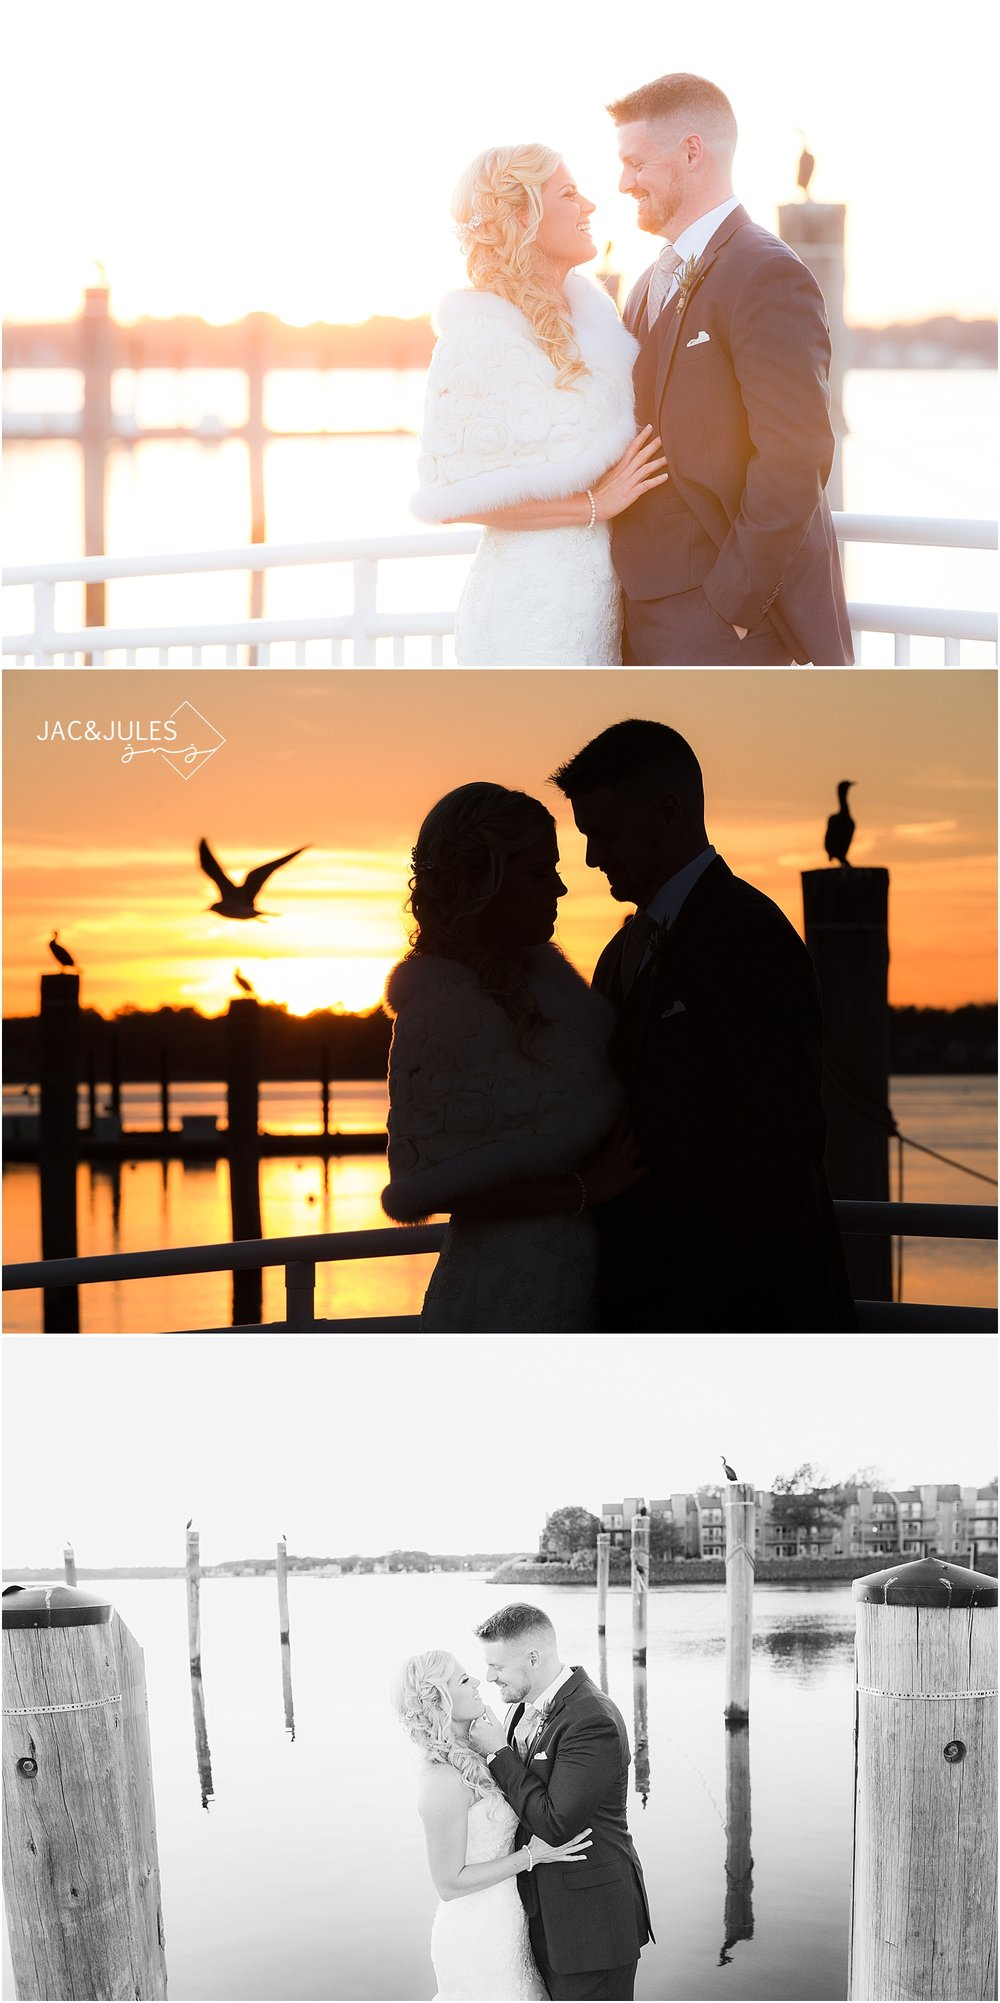 jacnjules photographs bride and groom at sunset at their wedding at Waterview Pavilion in Belmar, NJ